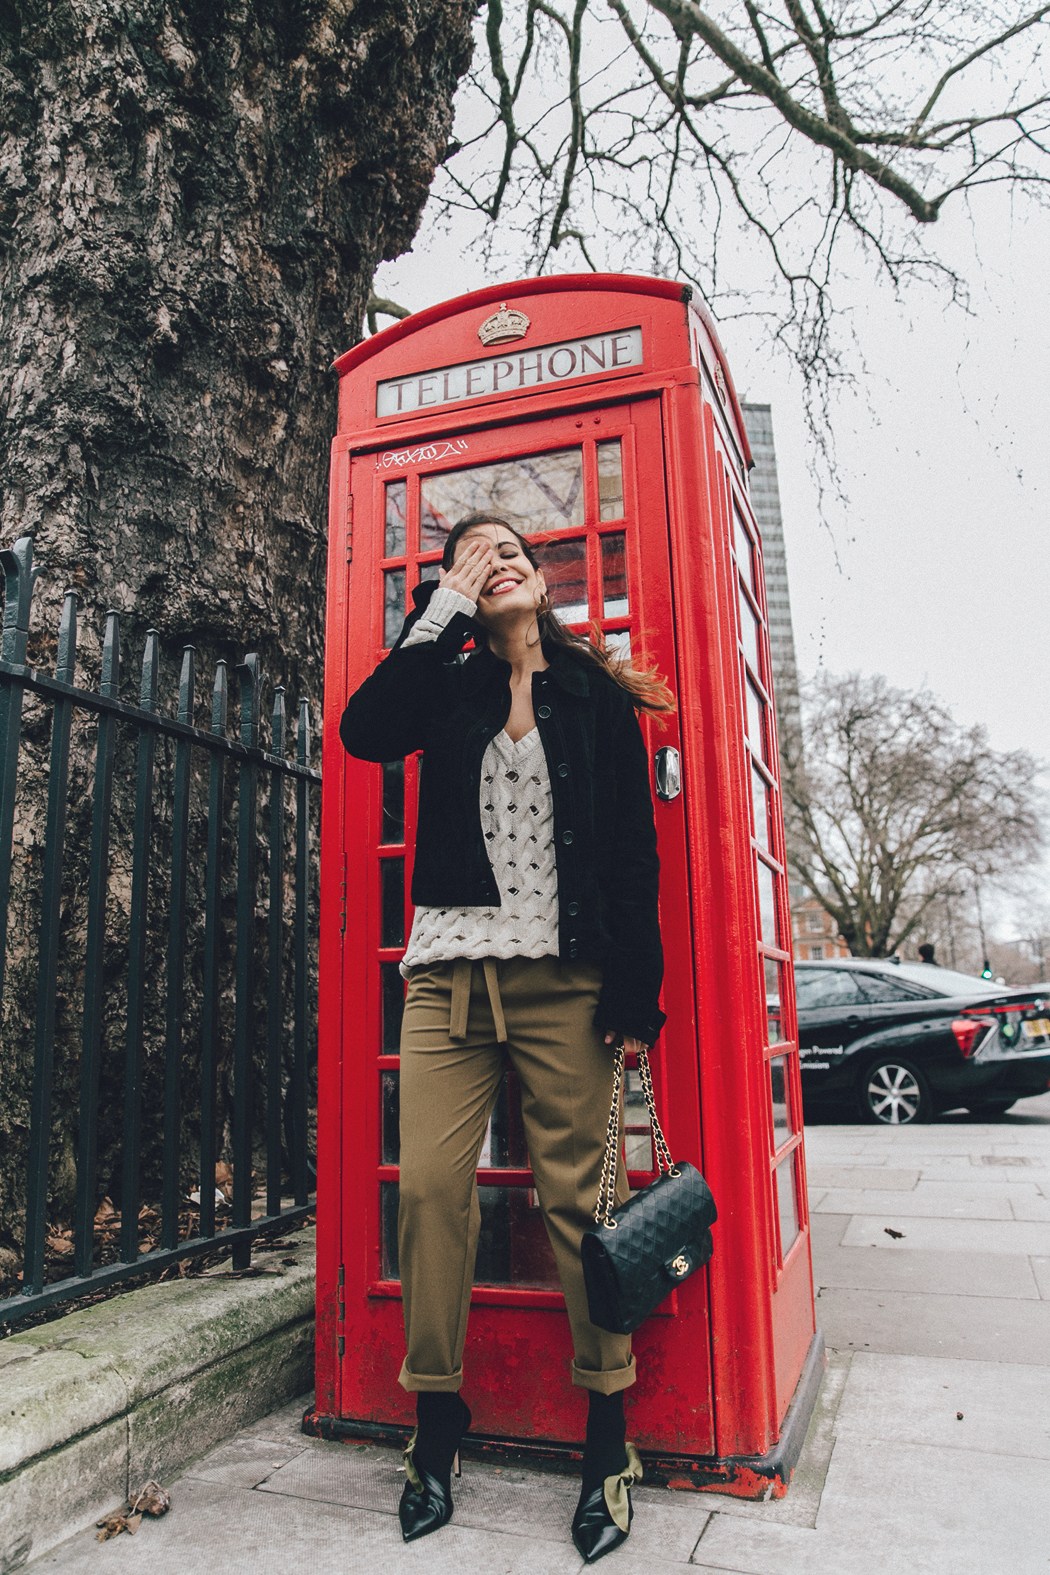 Topshop_Unique-Khaki_Trousers-VNeck_Sweater-Suede_Jacket-Bow_Shoes-Outfit-LFW-London_Fashion_Week_Fall_2016-Street_Style-26